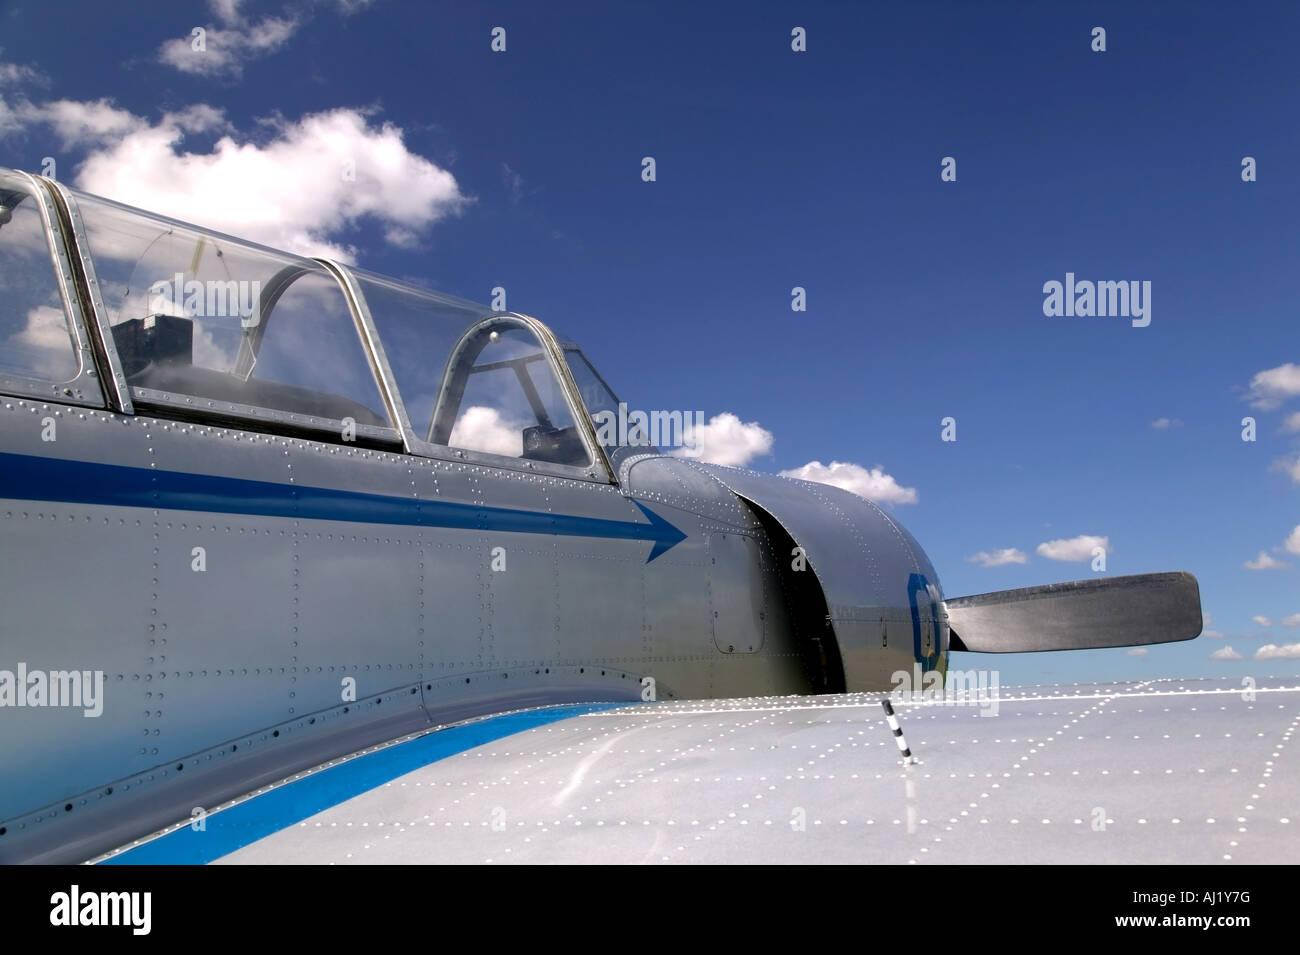 Old Russian fighter plane against a blue cloudy sky - Stock Image